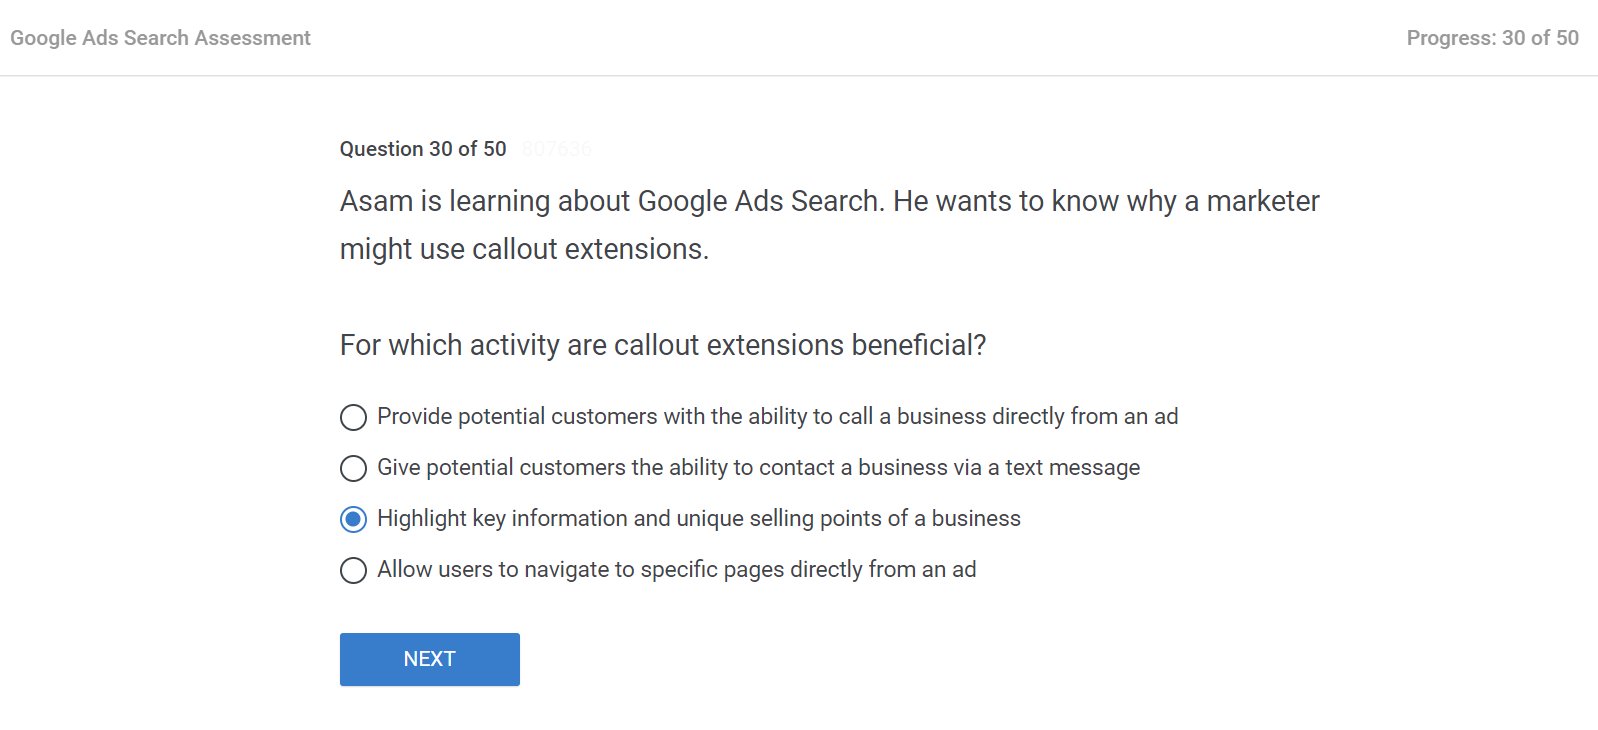 Asam is learning about Google Ads Search. He wants to know why a marketer might use callout